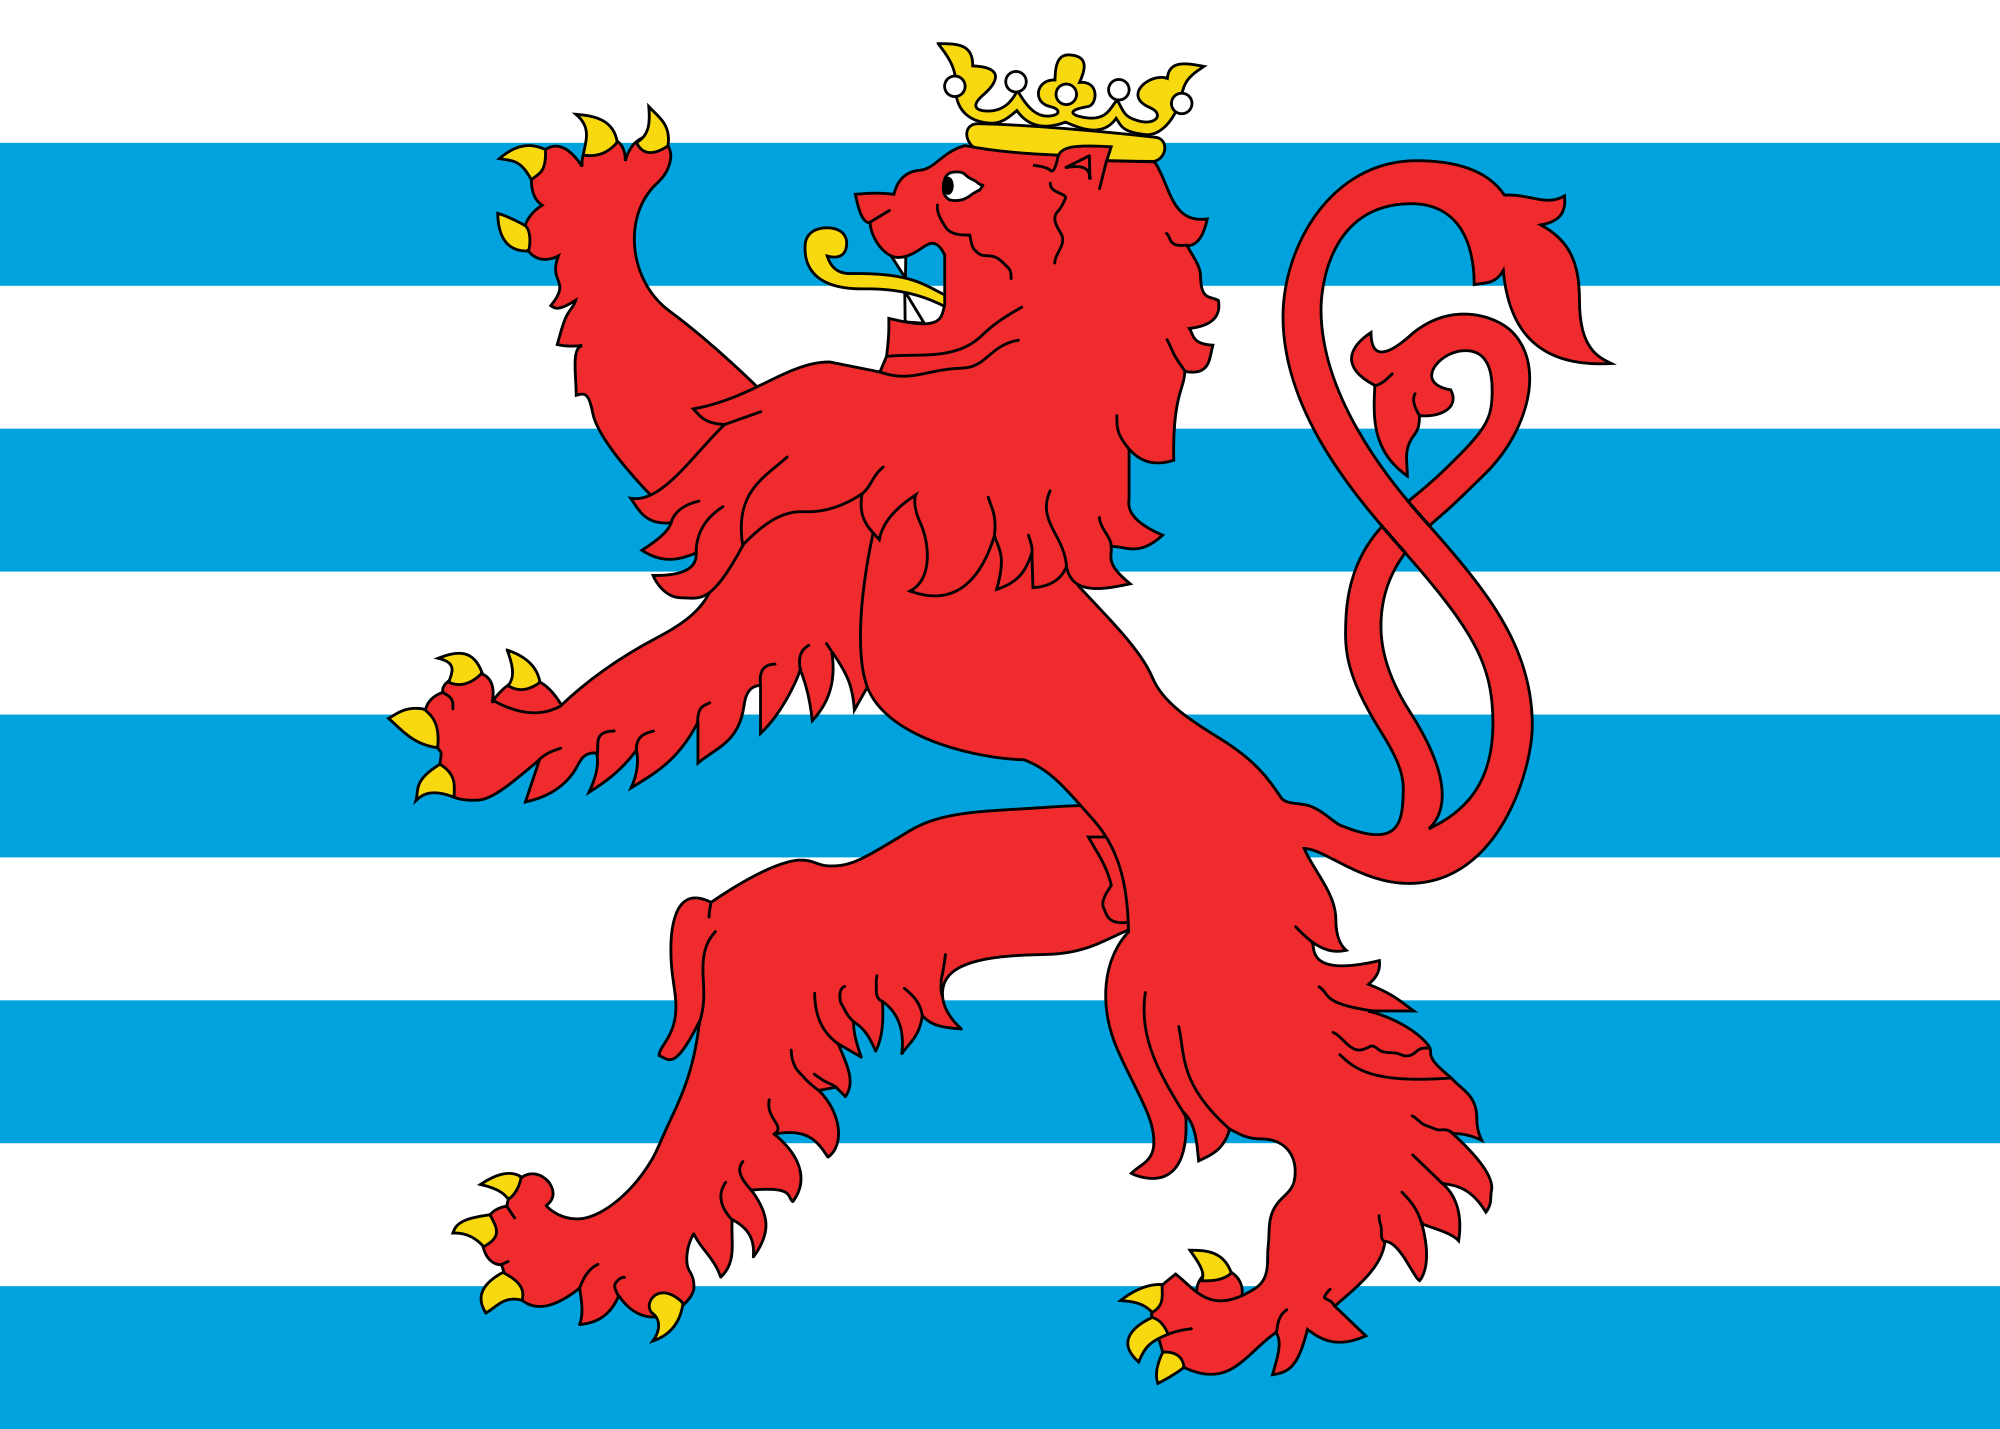 Luxembourg (Variation)